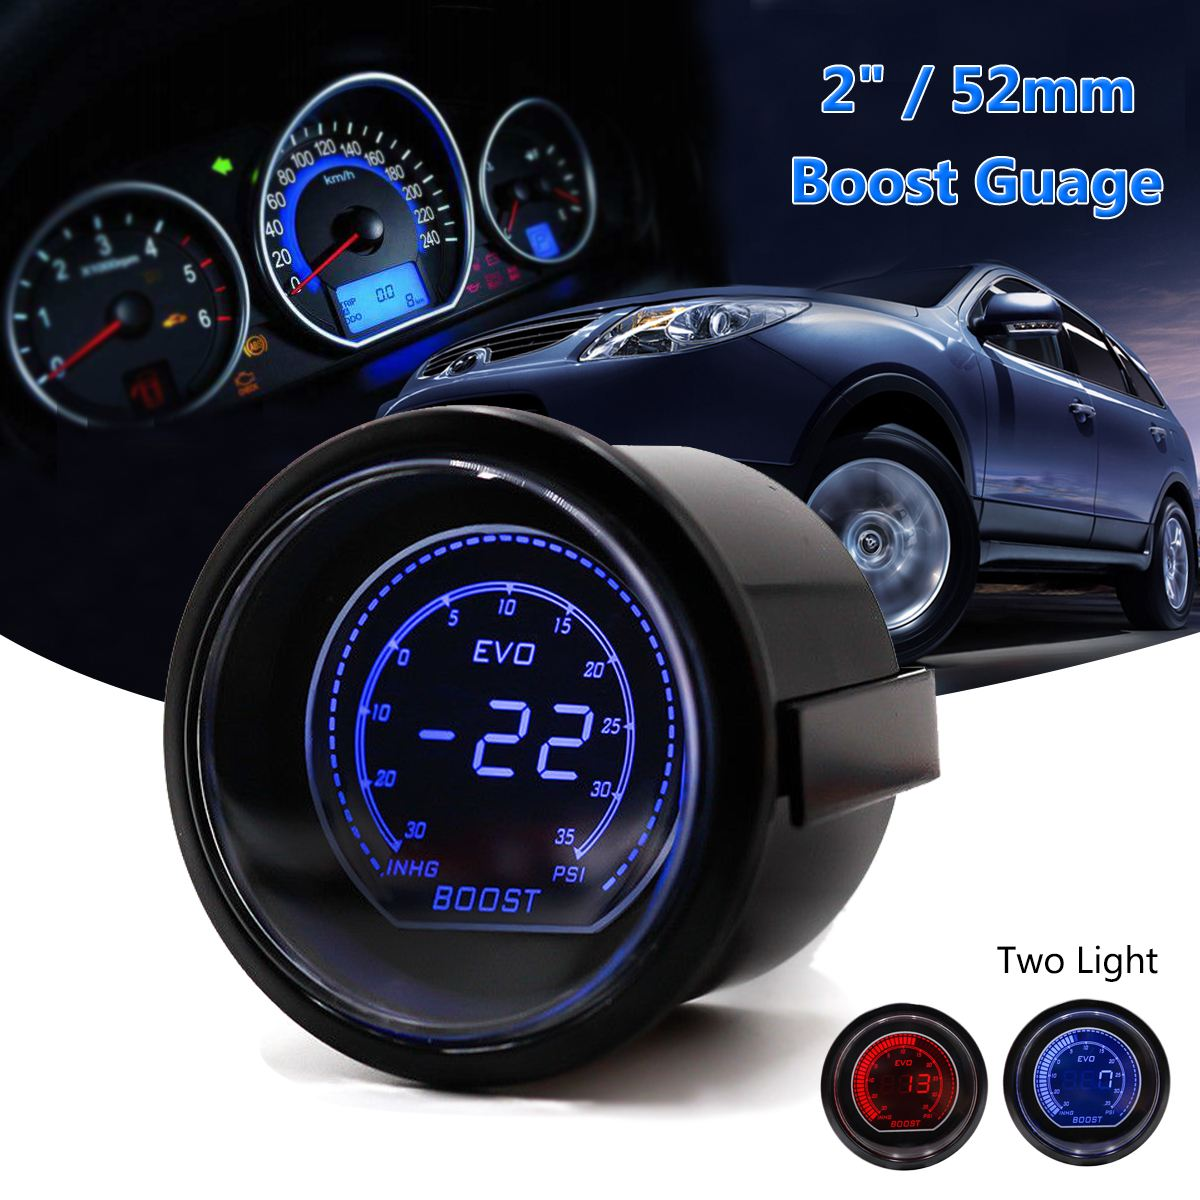 2'' 52mm Universal Turbo Car LED Vacuum Turbo Boost Gauge Meter Red Blue 35PSI cnspeed 52mm car evo digital turbo boost gauge psi meter sensor blue lcd turbo boost meter turbo pressure boost gauge ms101031